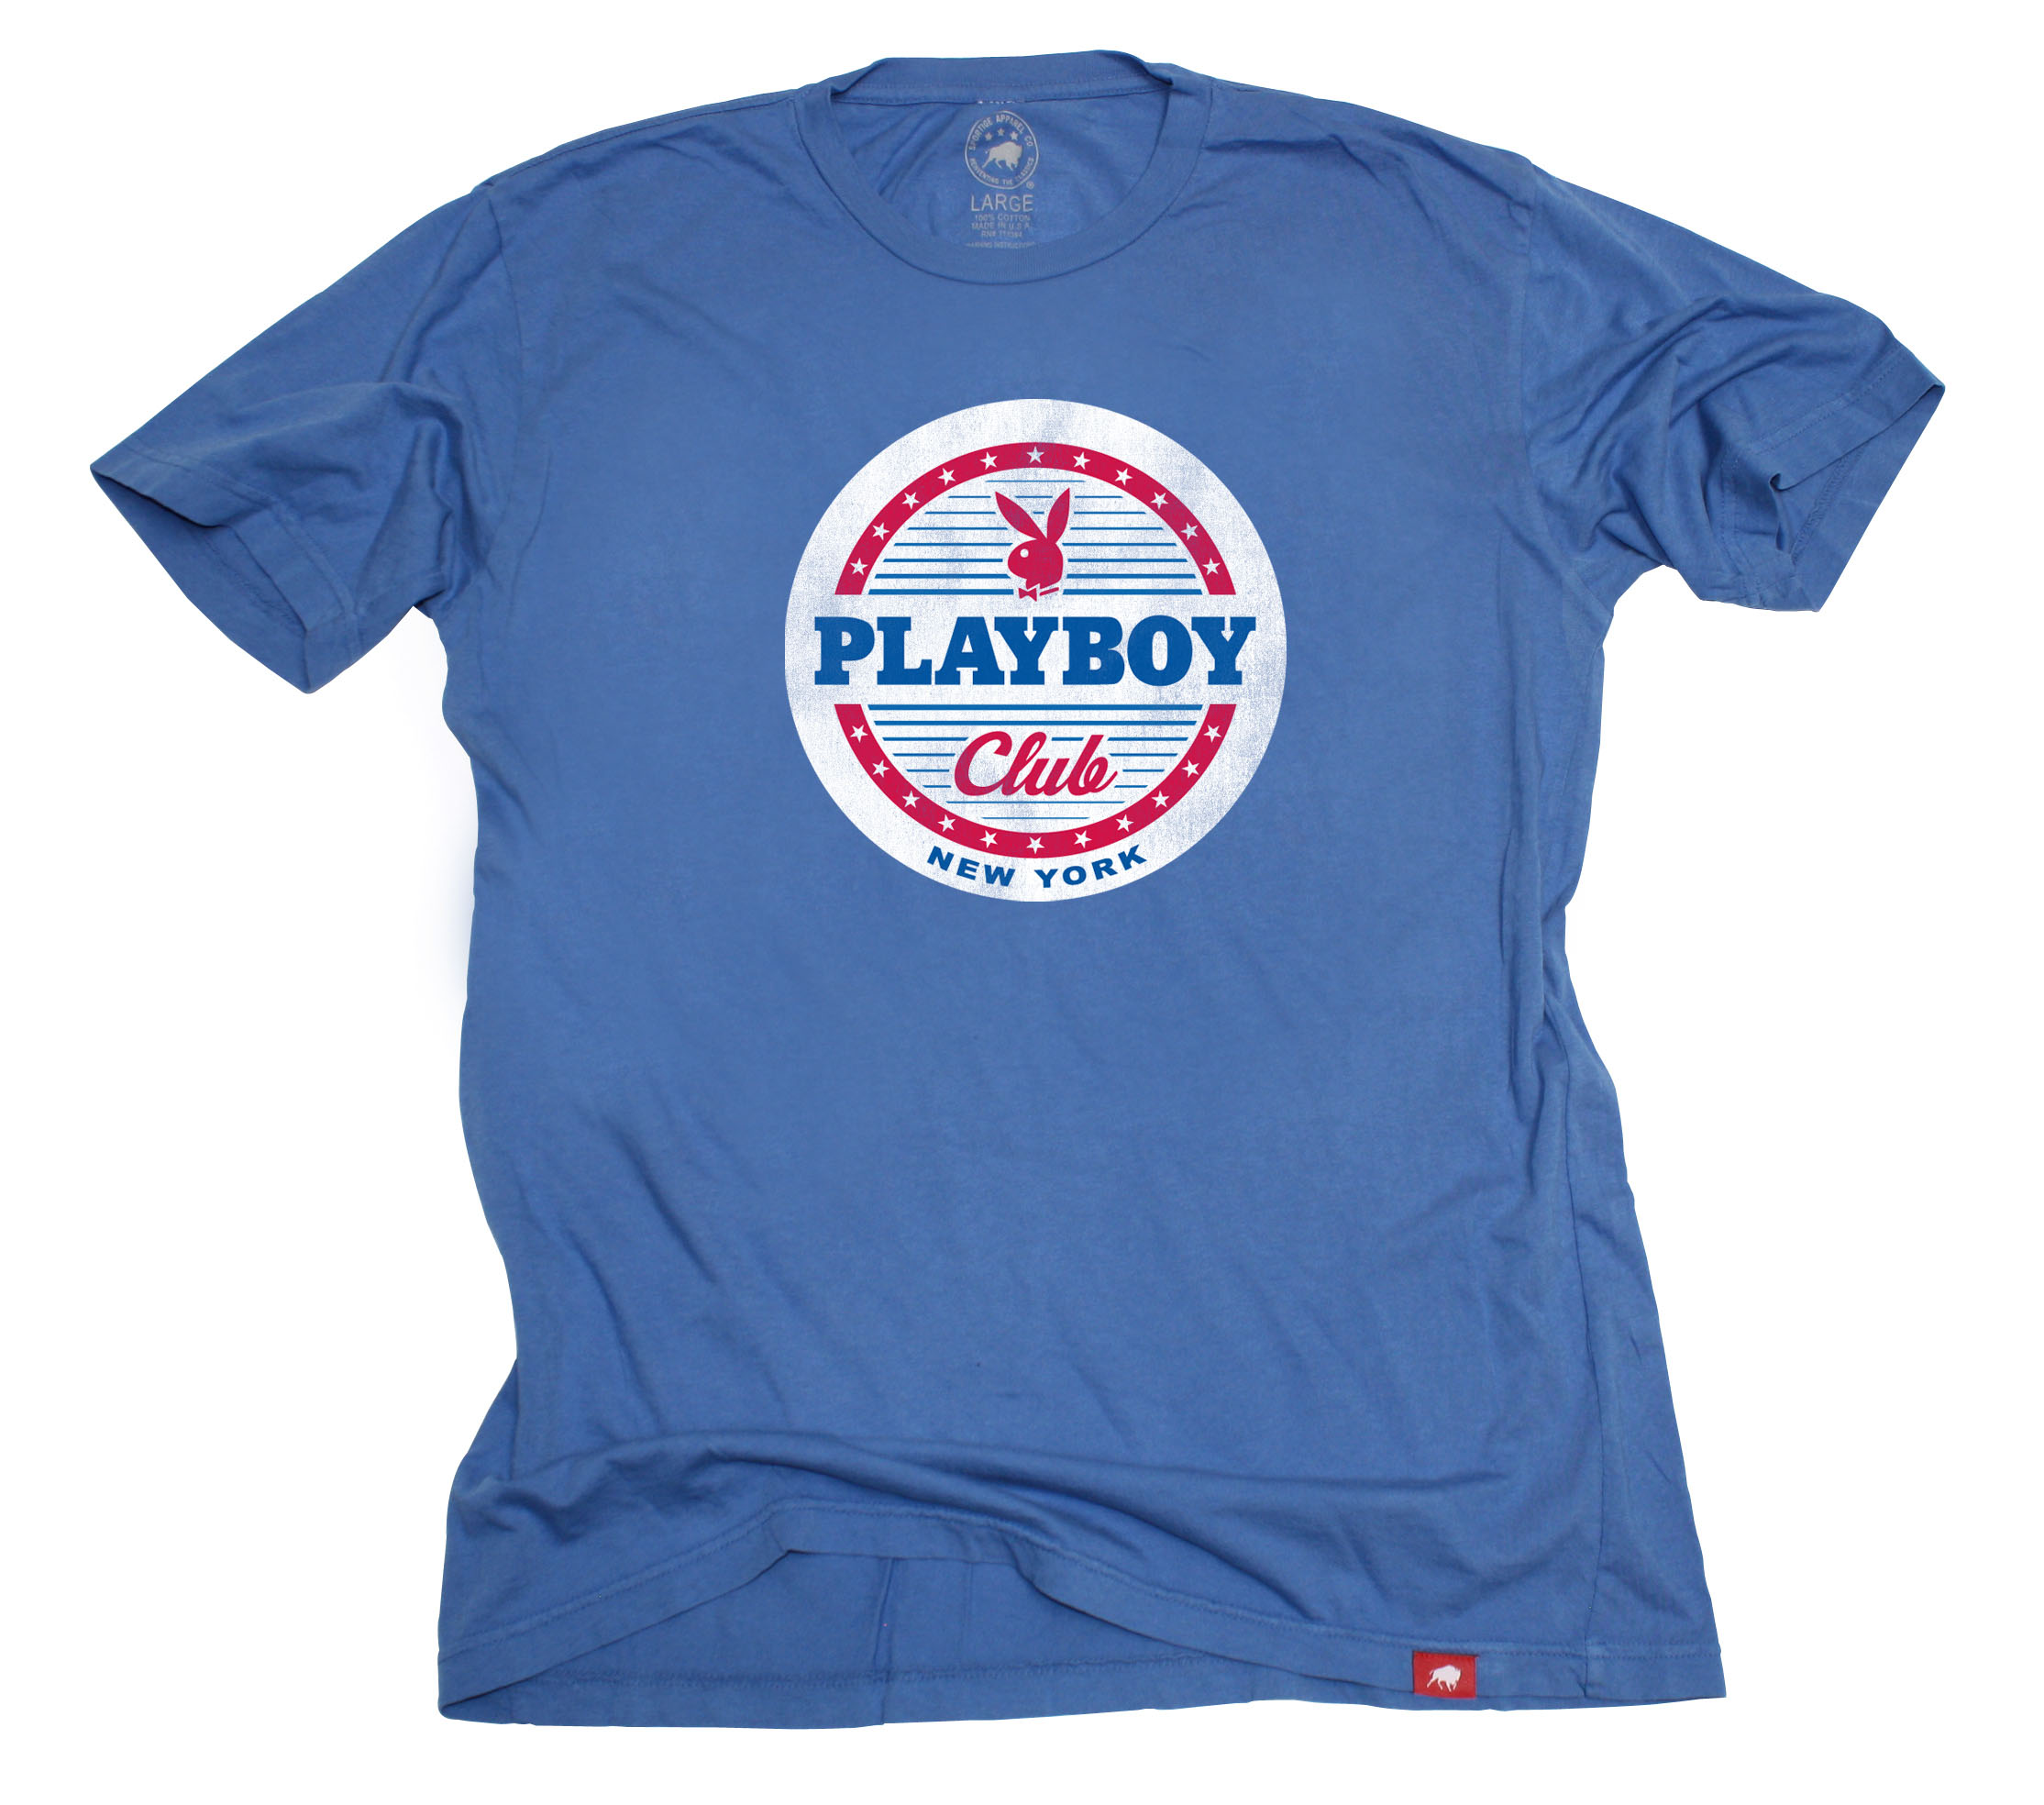 Playboy Sportiqe Playboy Club New York Crewneck T-Shirt